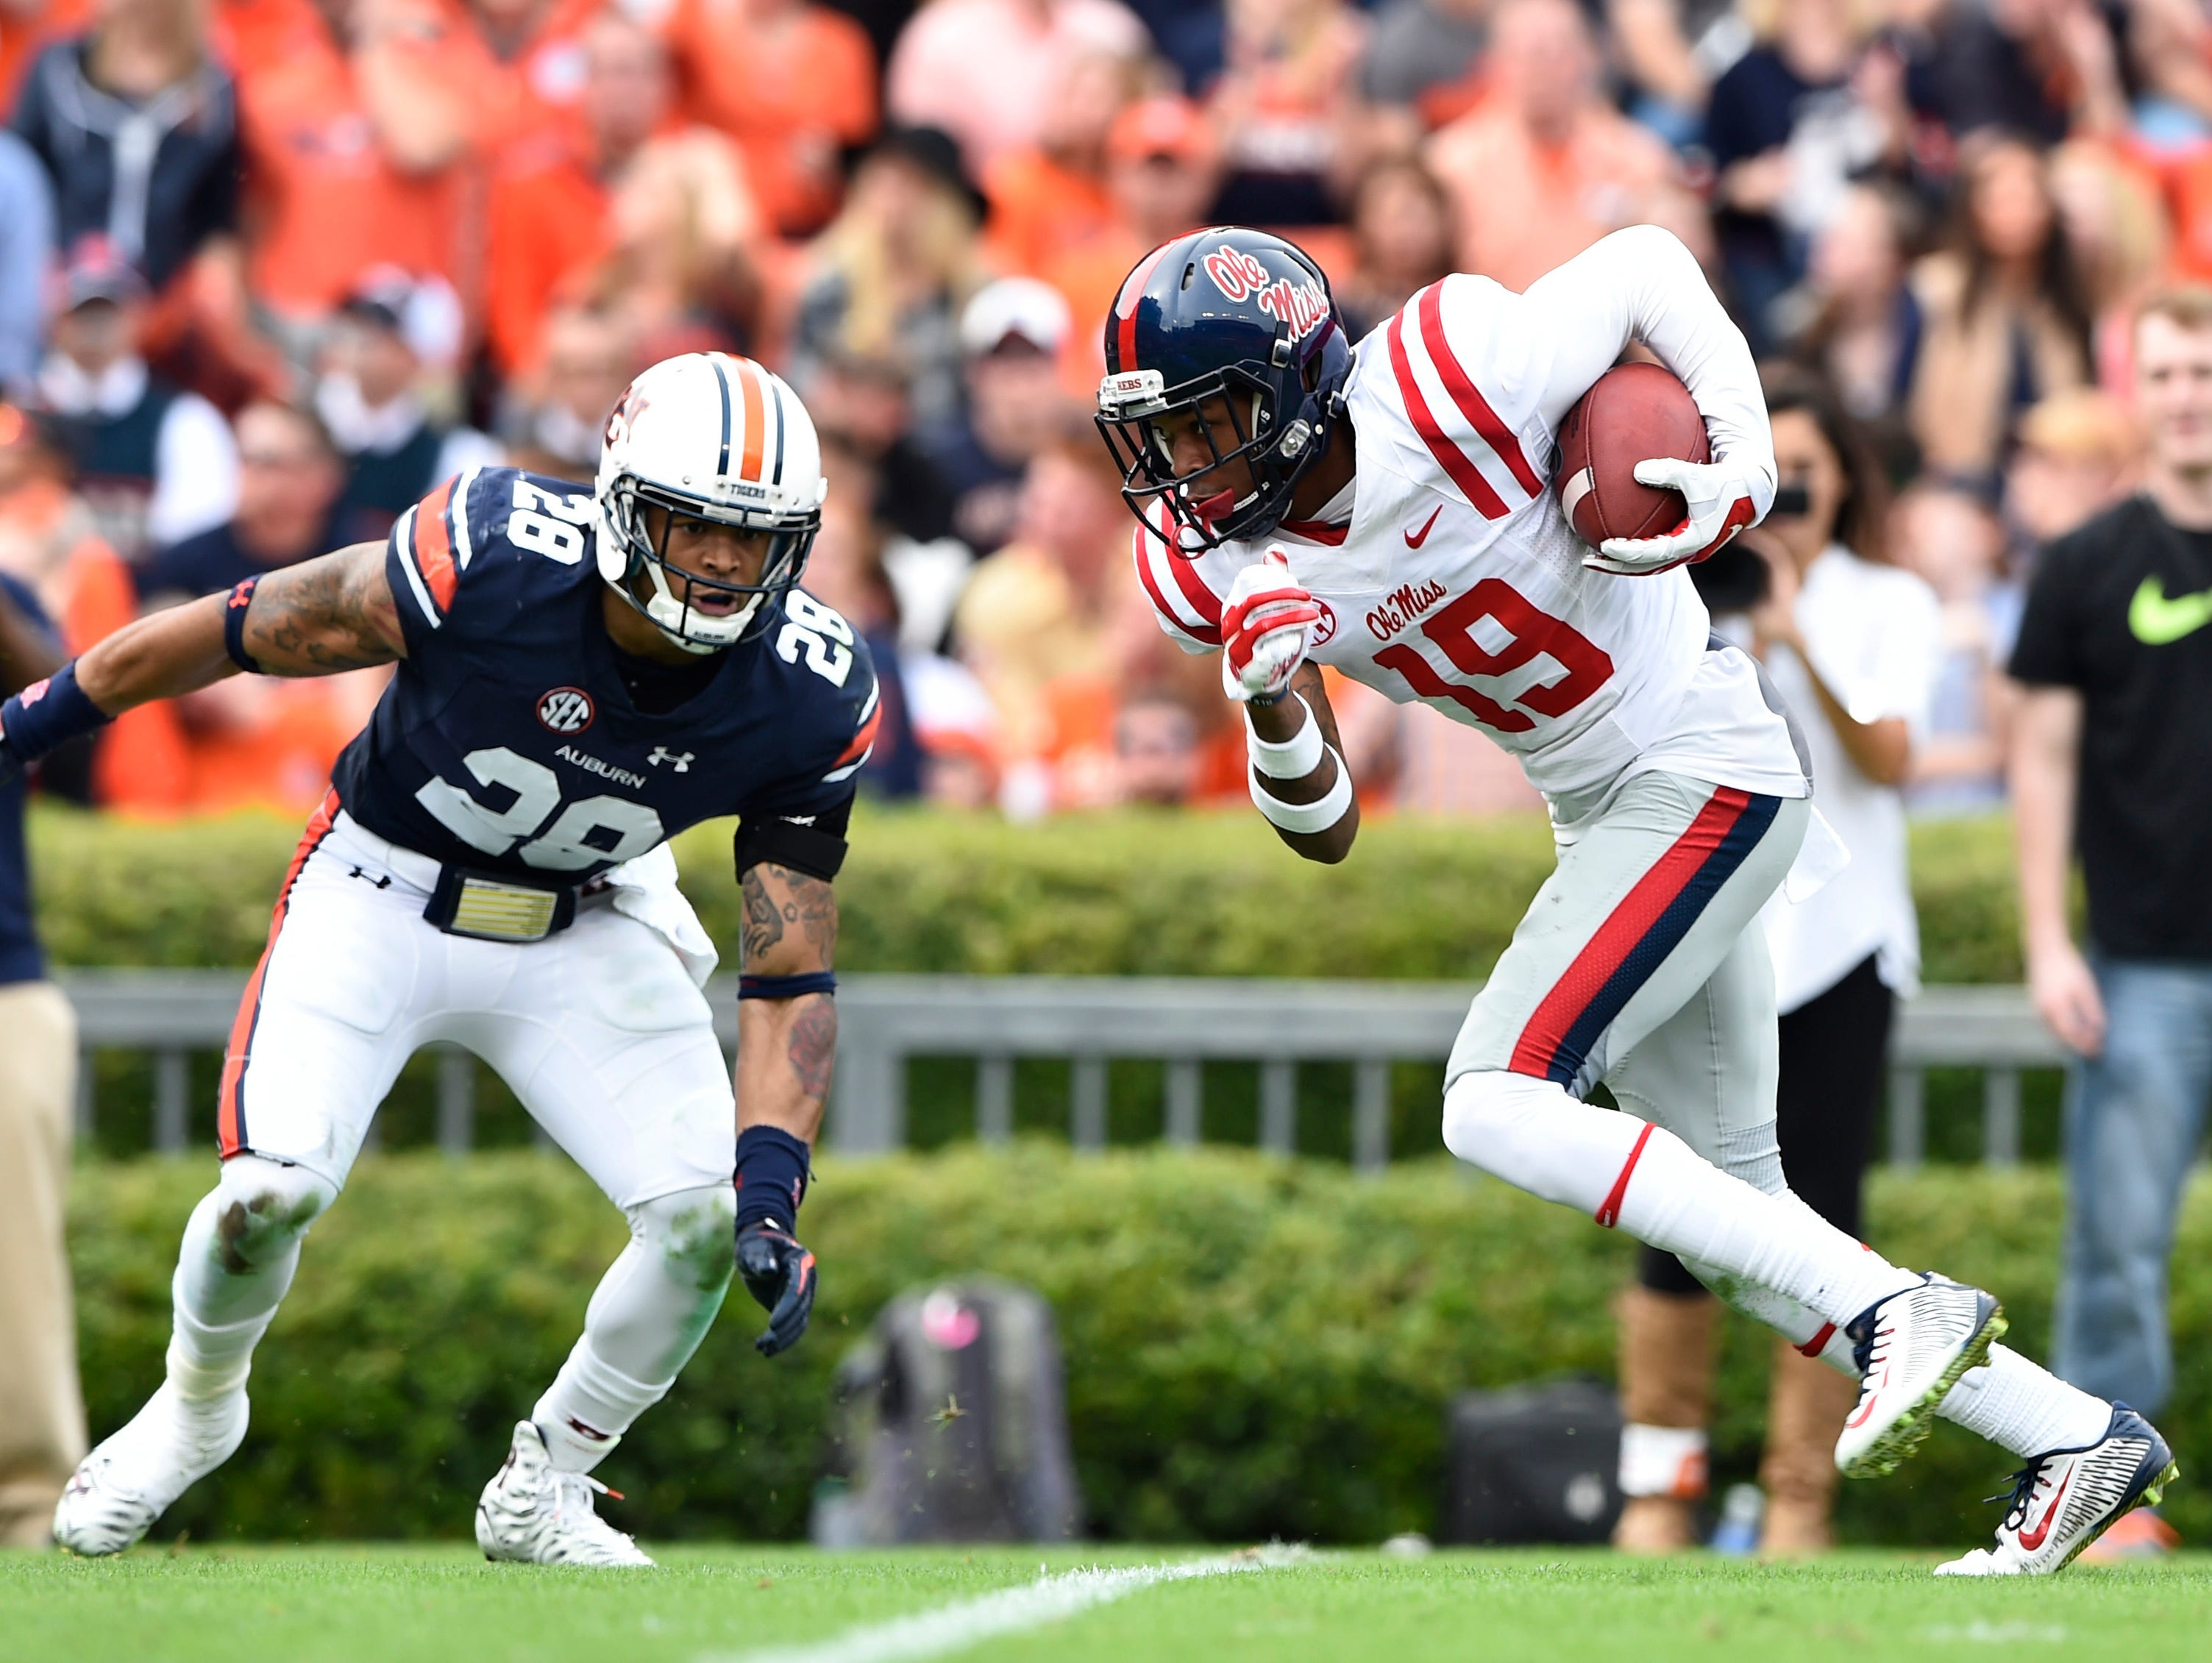 Ole Miss wide receiver Derrick Jones caught a big 45-yard touchdown against Auburn on Saturday after struggling to get much playing time this season.